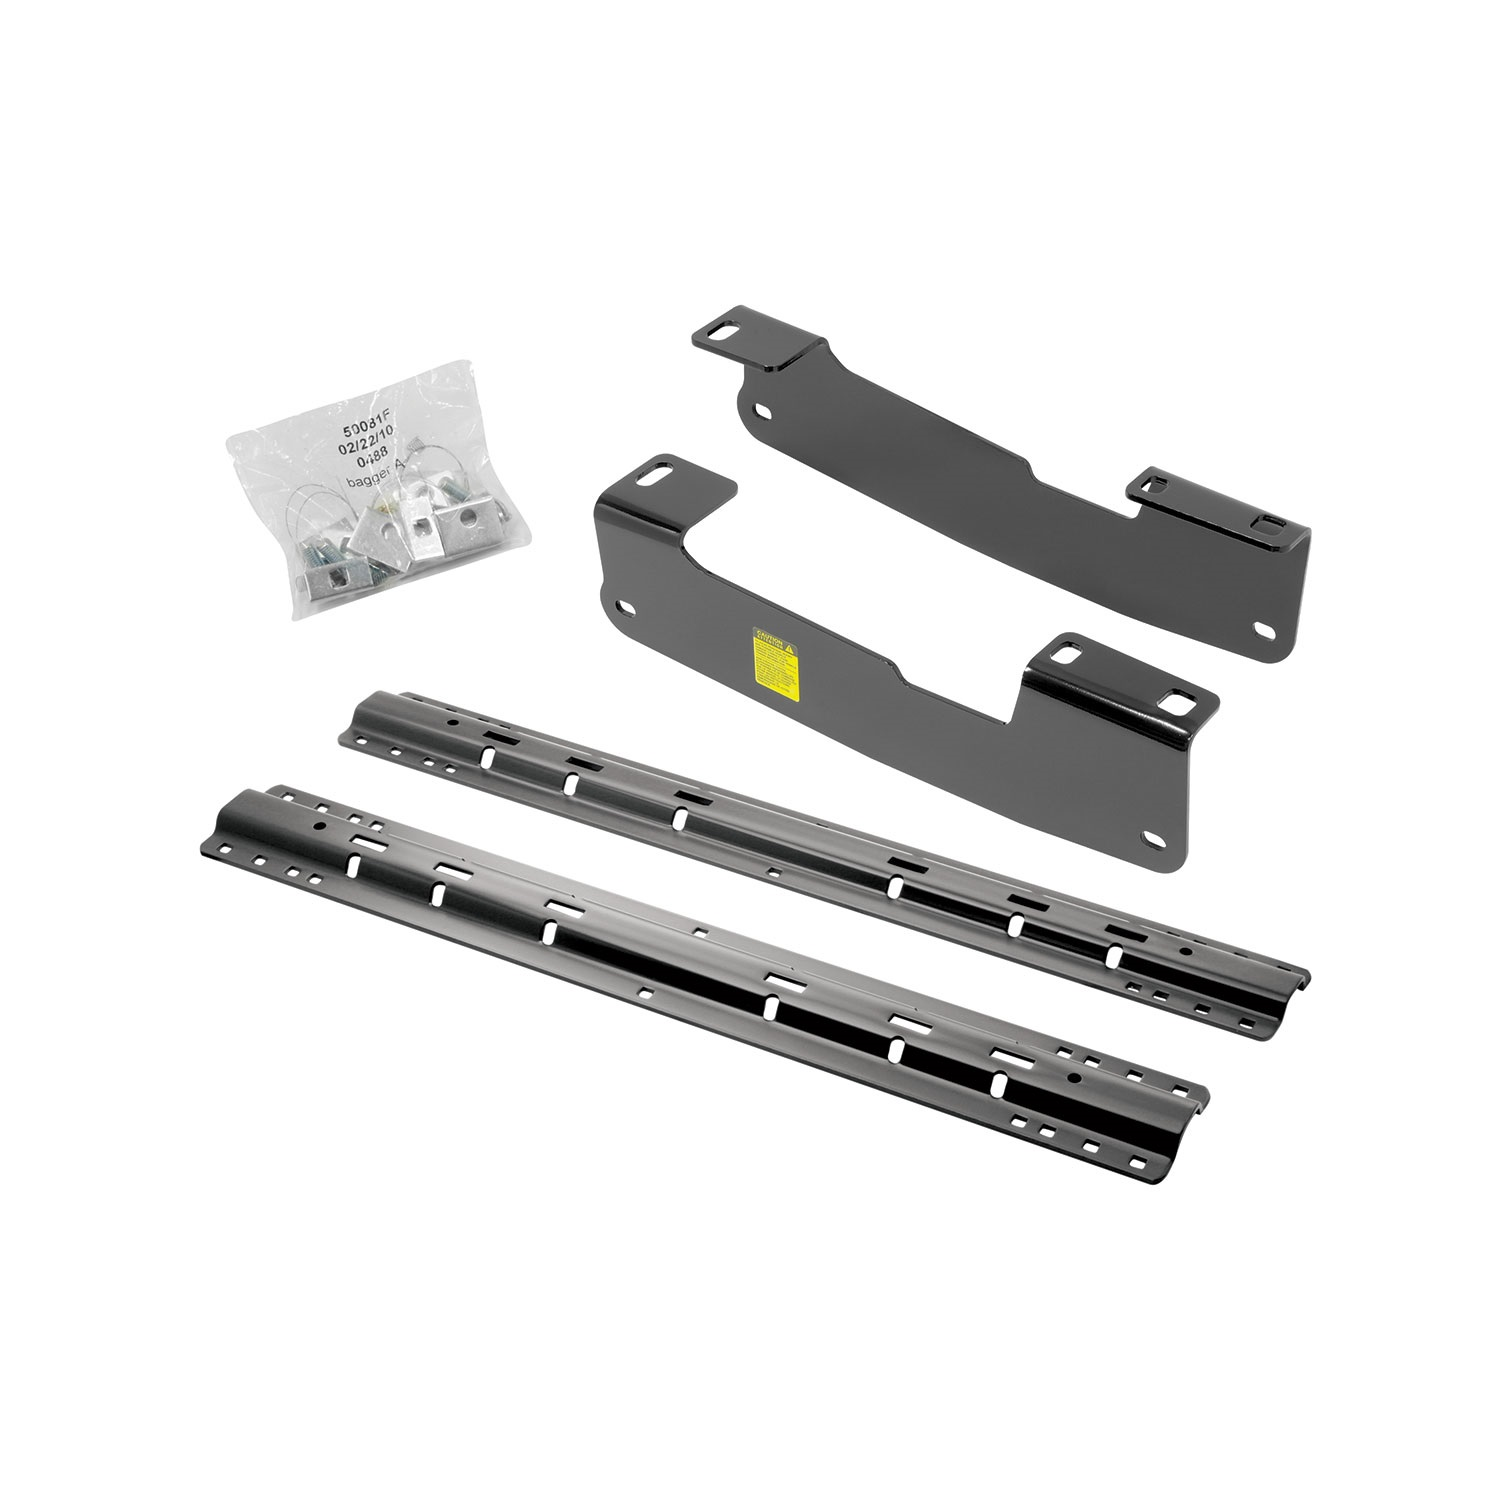 Reese 5008158 Quick Install Fifth Wheel Mounting Brackets...